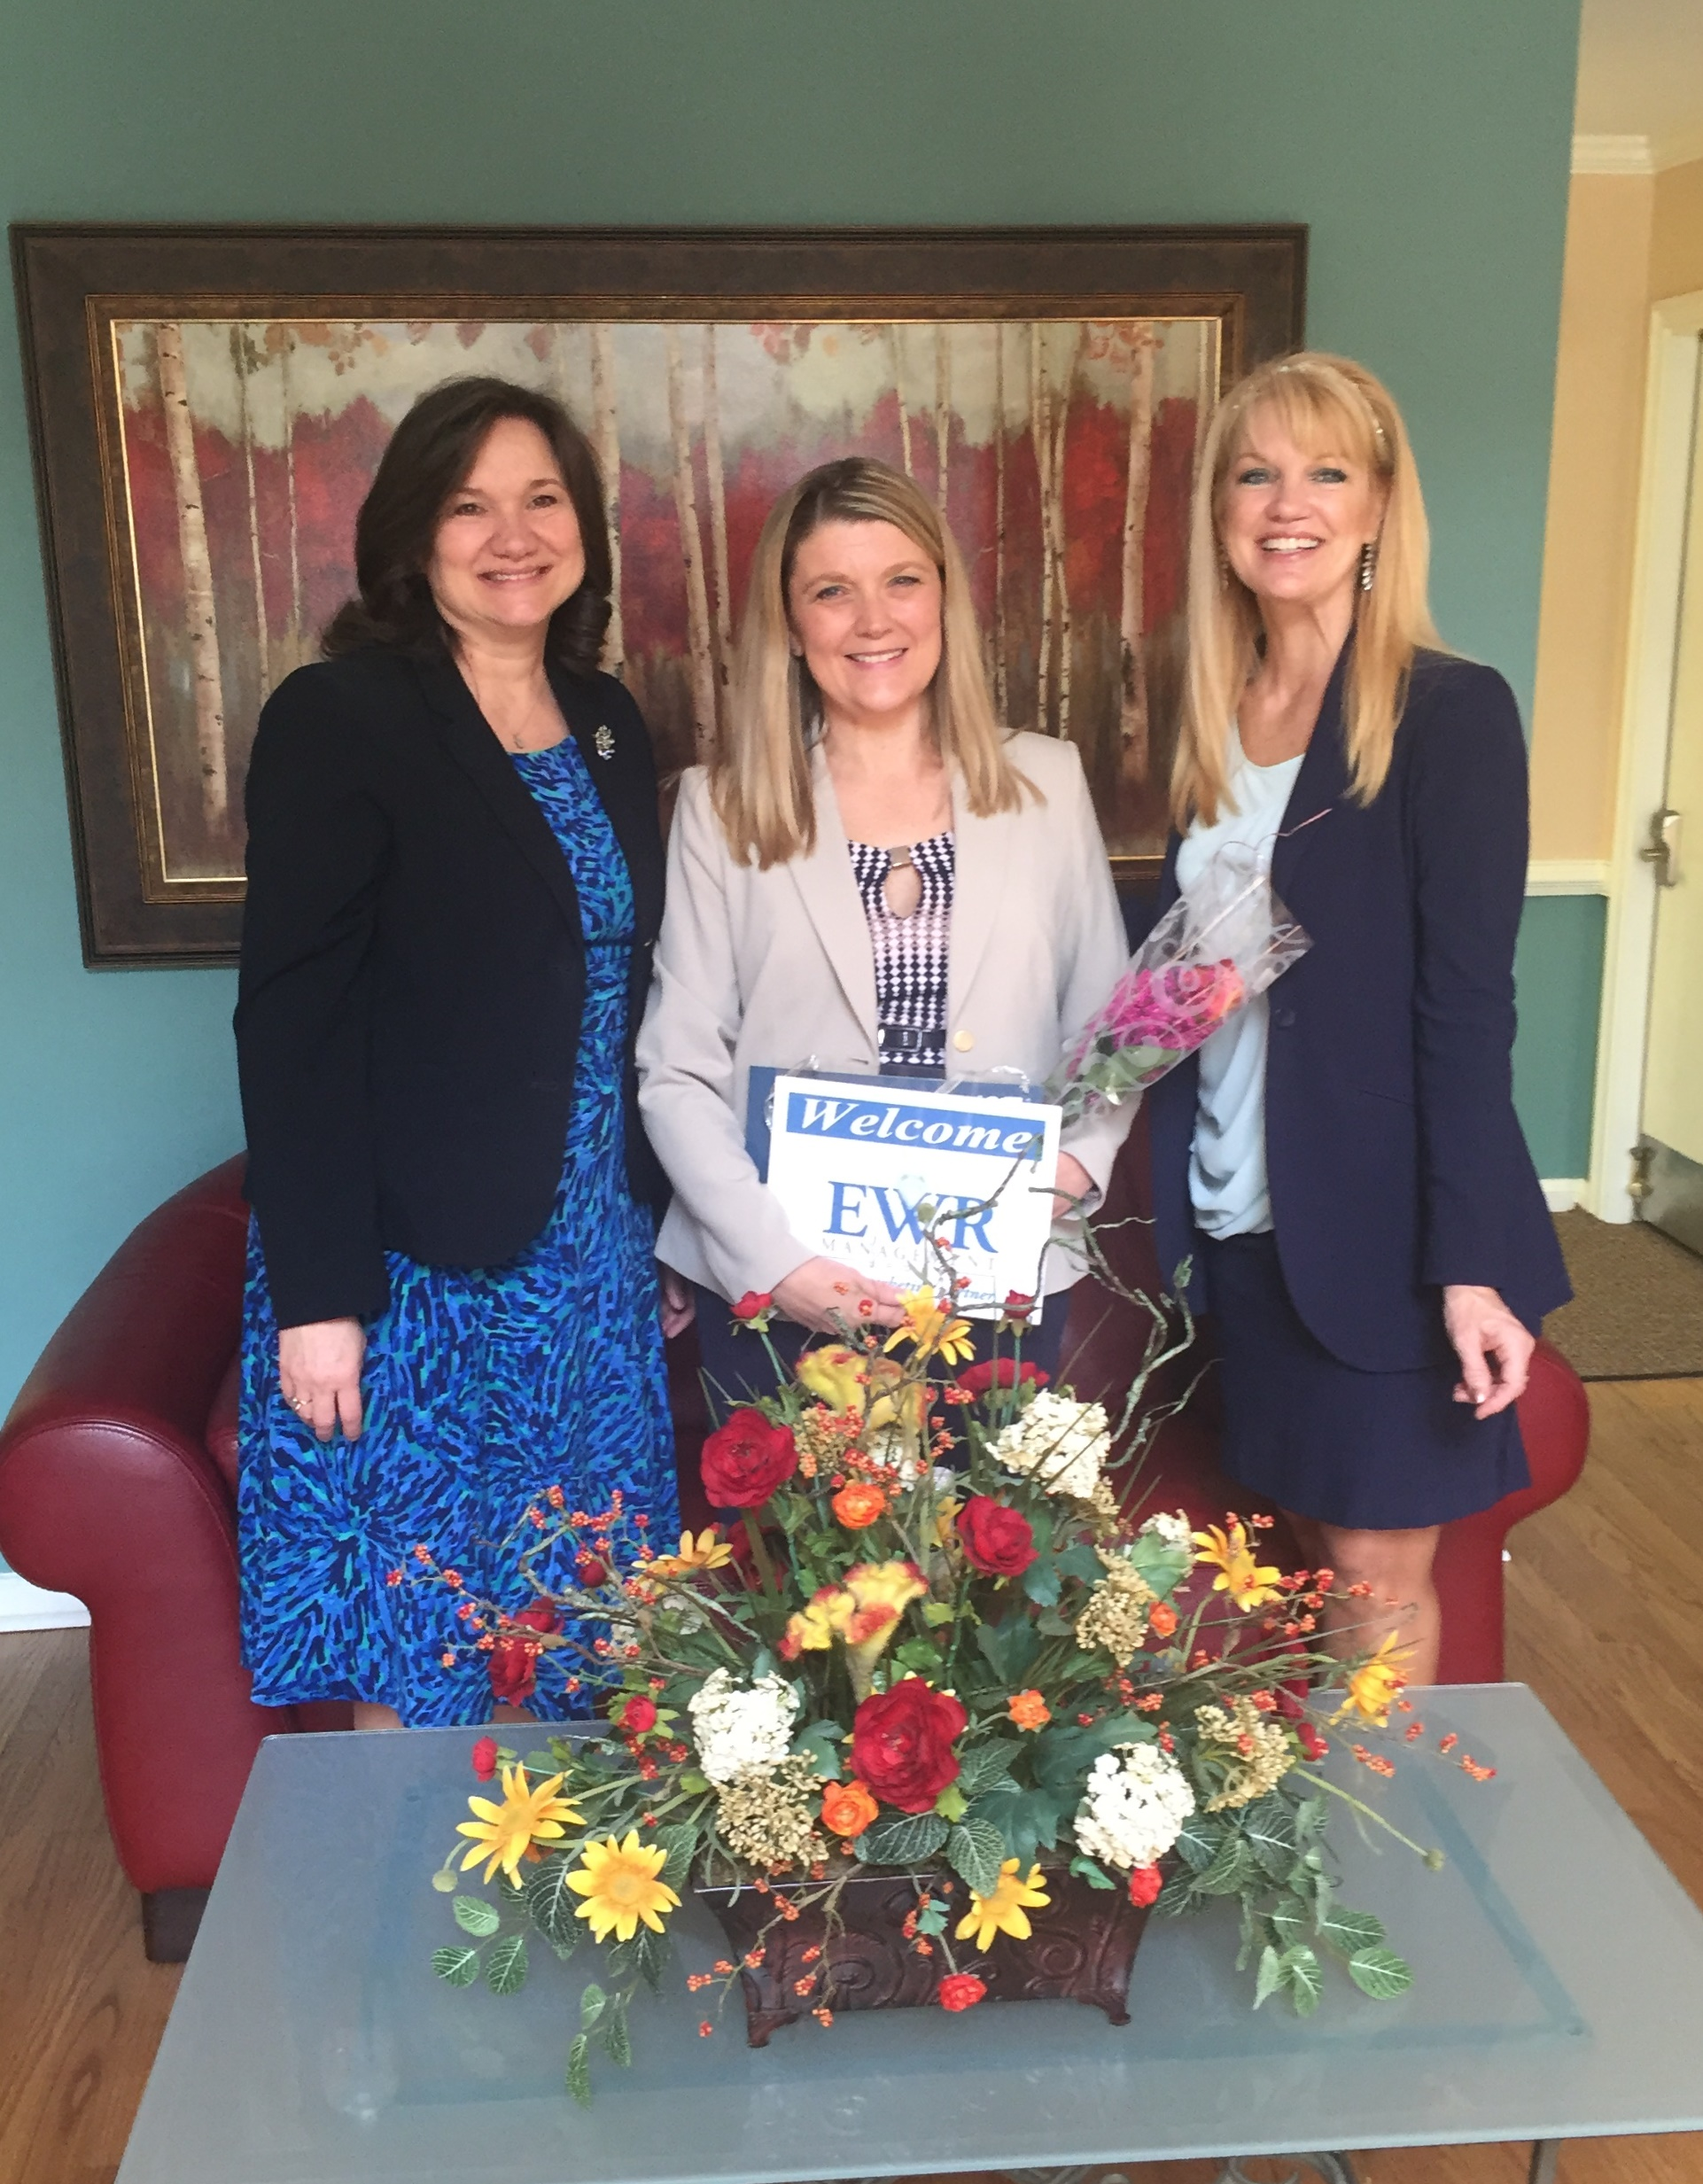 Shannon Kane, Virginia Beach City Councilwoman and President/Chief Marketing Partner of EWR Management Group is surprised by Hampton Roads Chamber of Commerce Executive Vice President of Operations, Sylvia Haines and Senior Vice President of Programs and Communications, Priscilla Monti with the 2016 Small Business Leader of the Year Award. Kane will be honored at the Chamber's annual Small Business of the Year awards luncheon on May 24th.